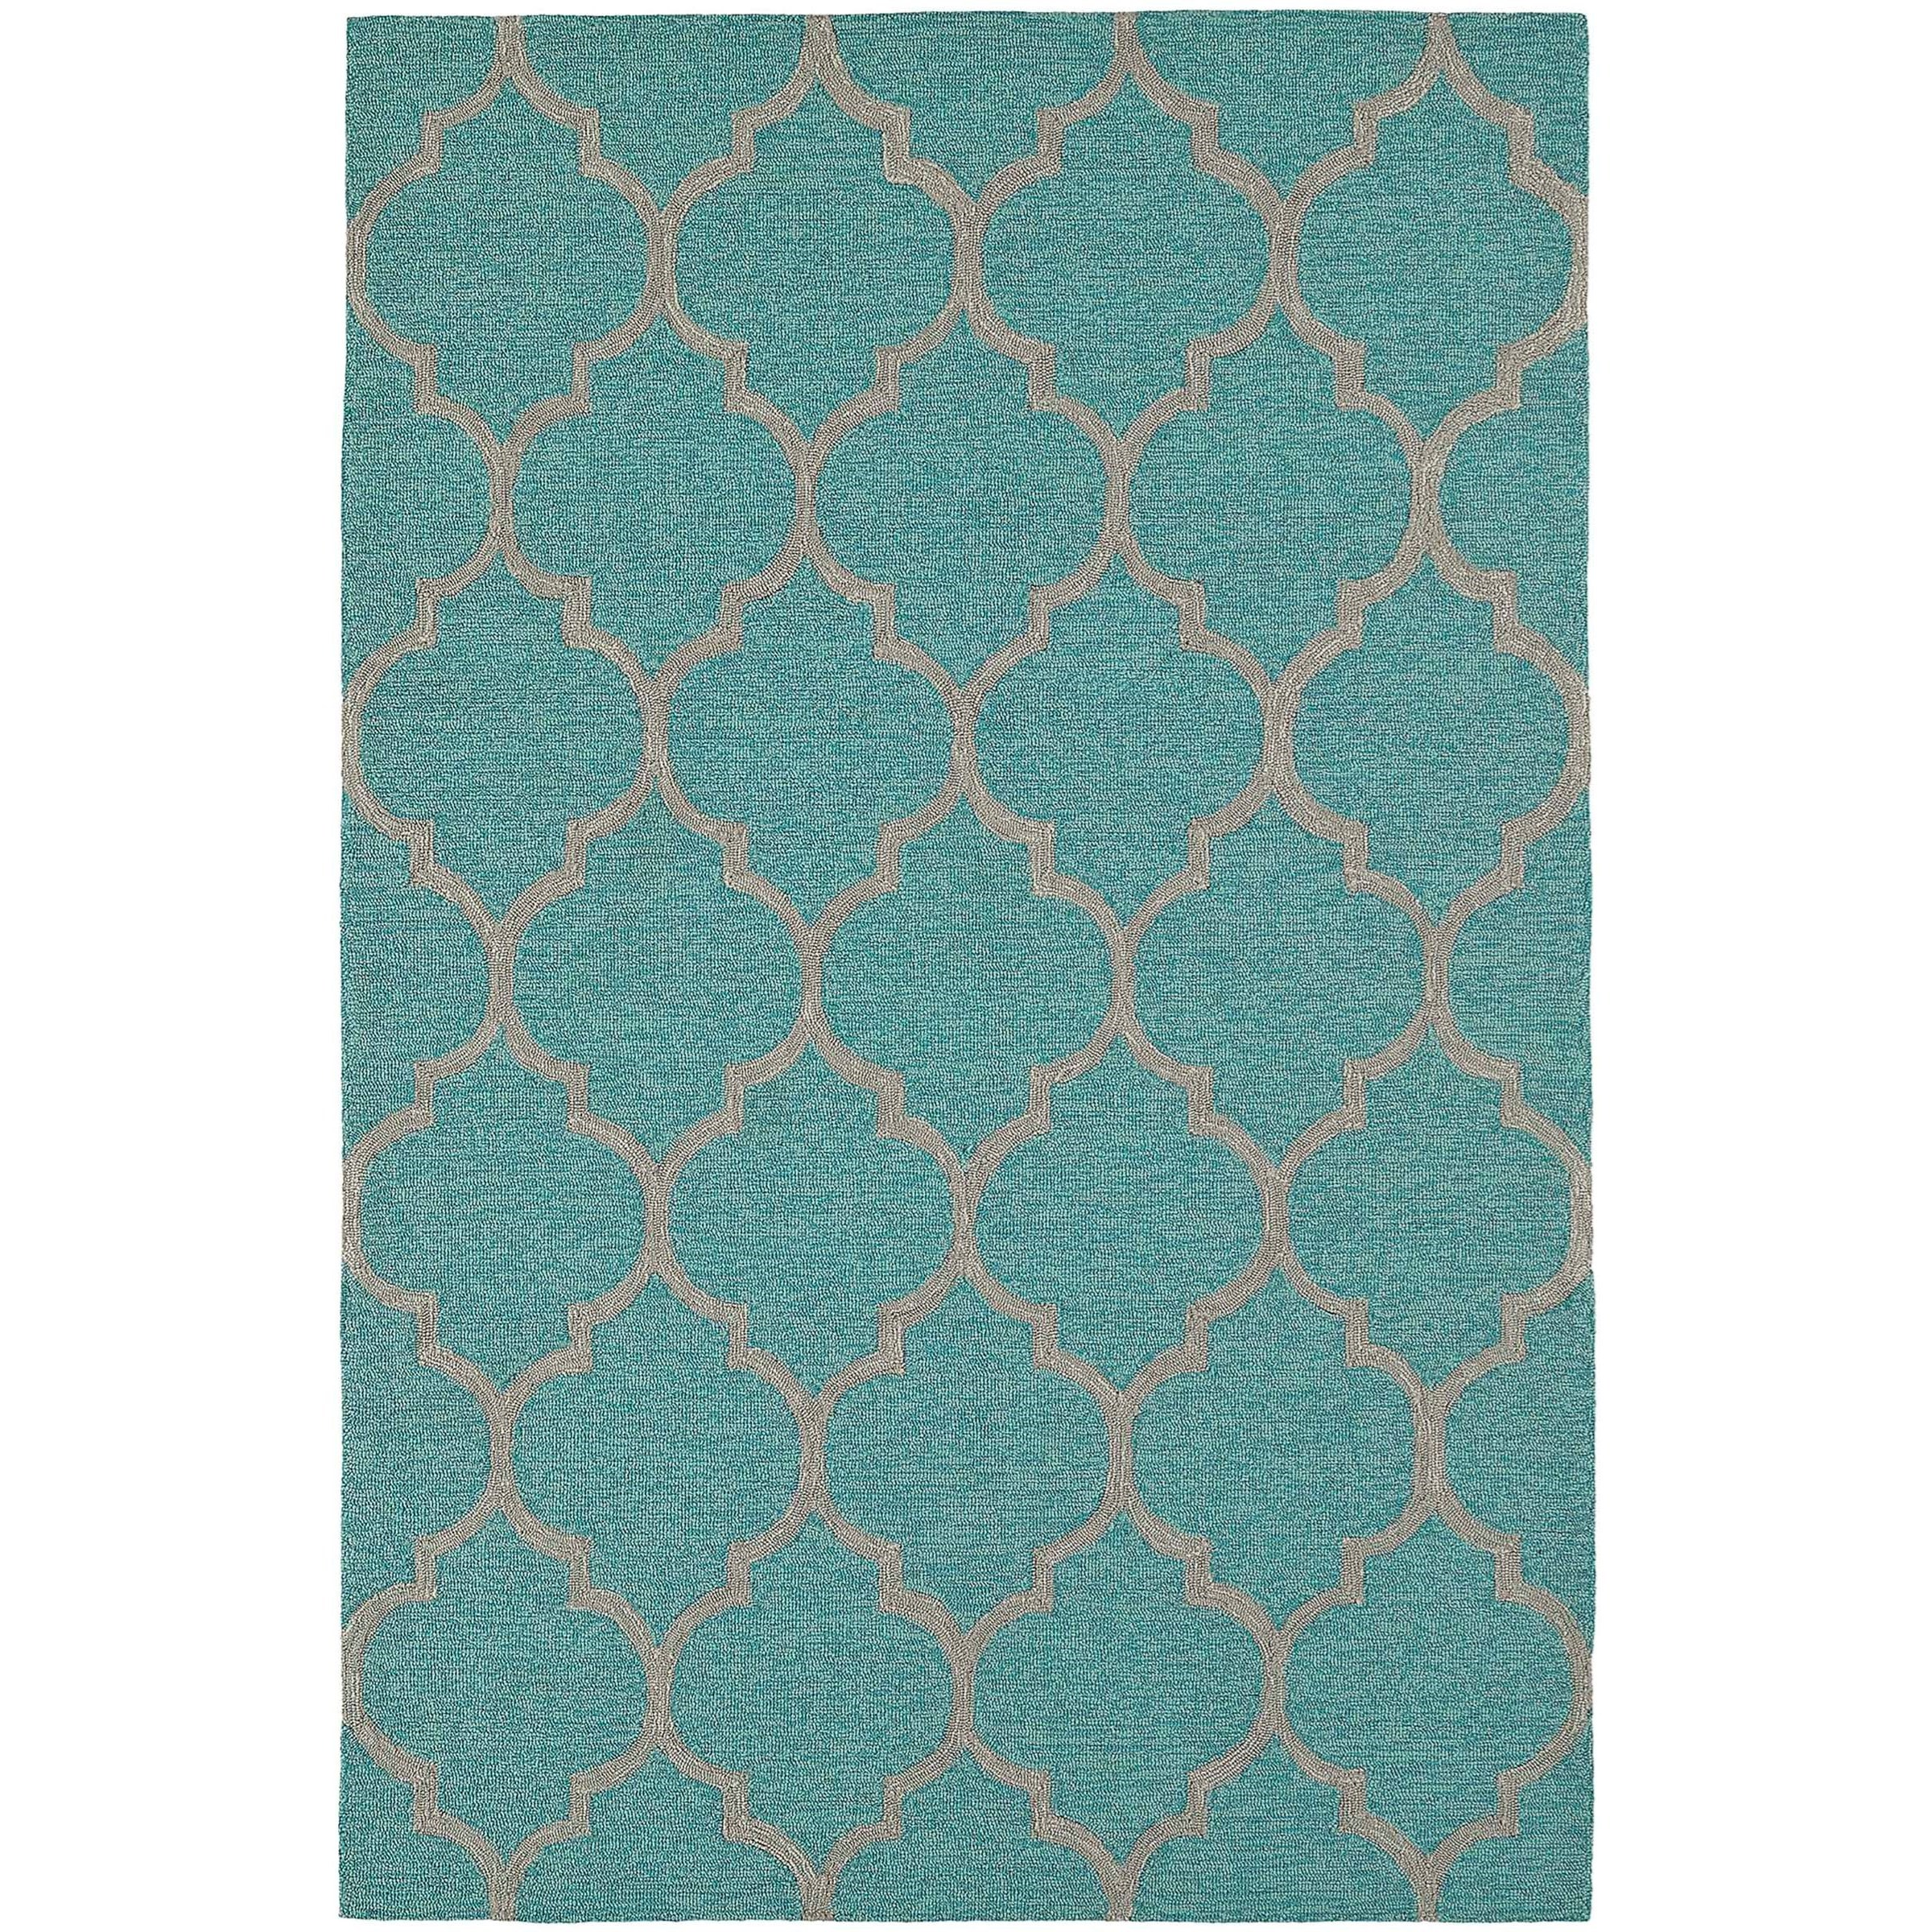 Dalyn Cabana Robins Egg 8'X10' Rug - Item Number: CN12RE8X10